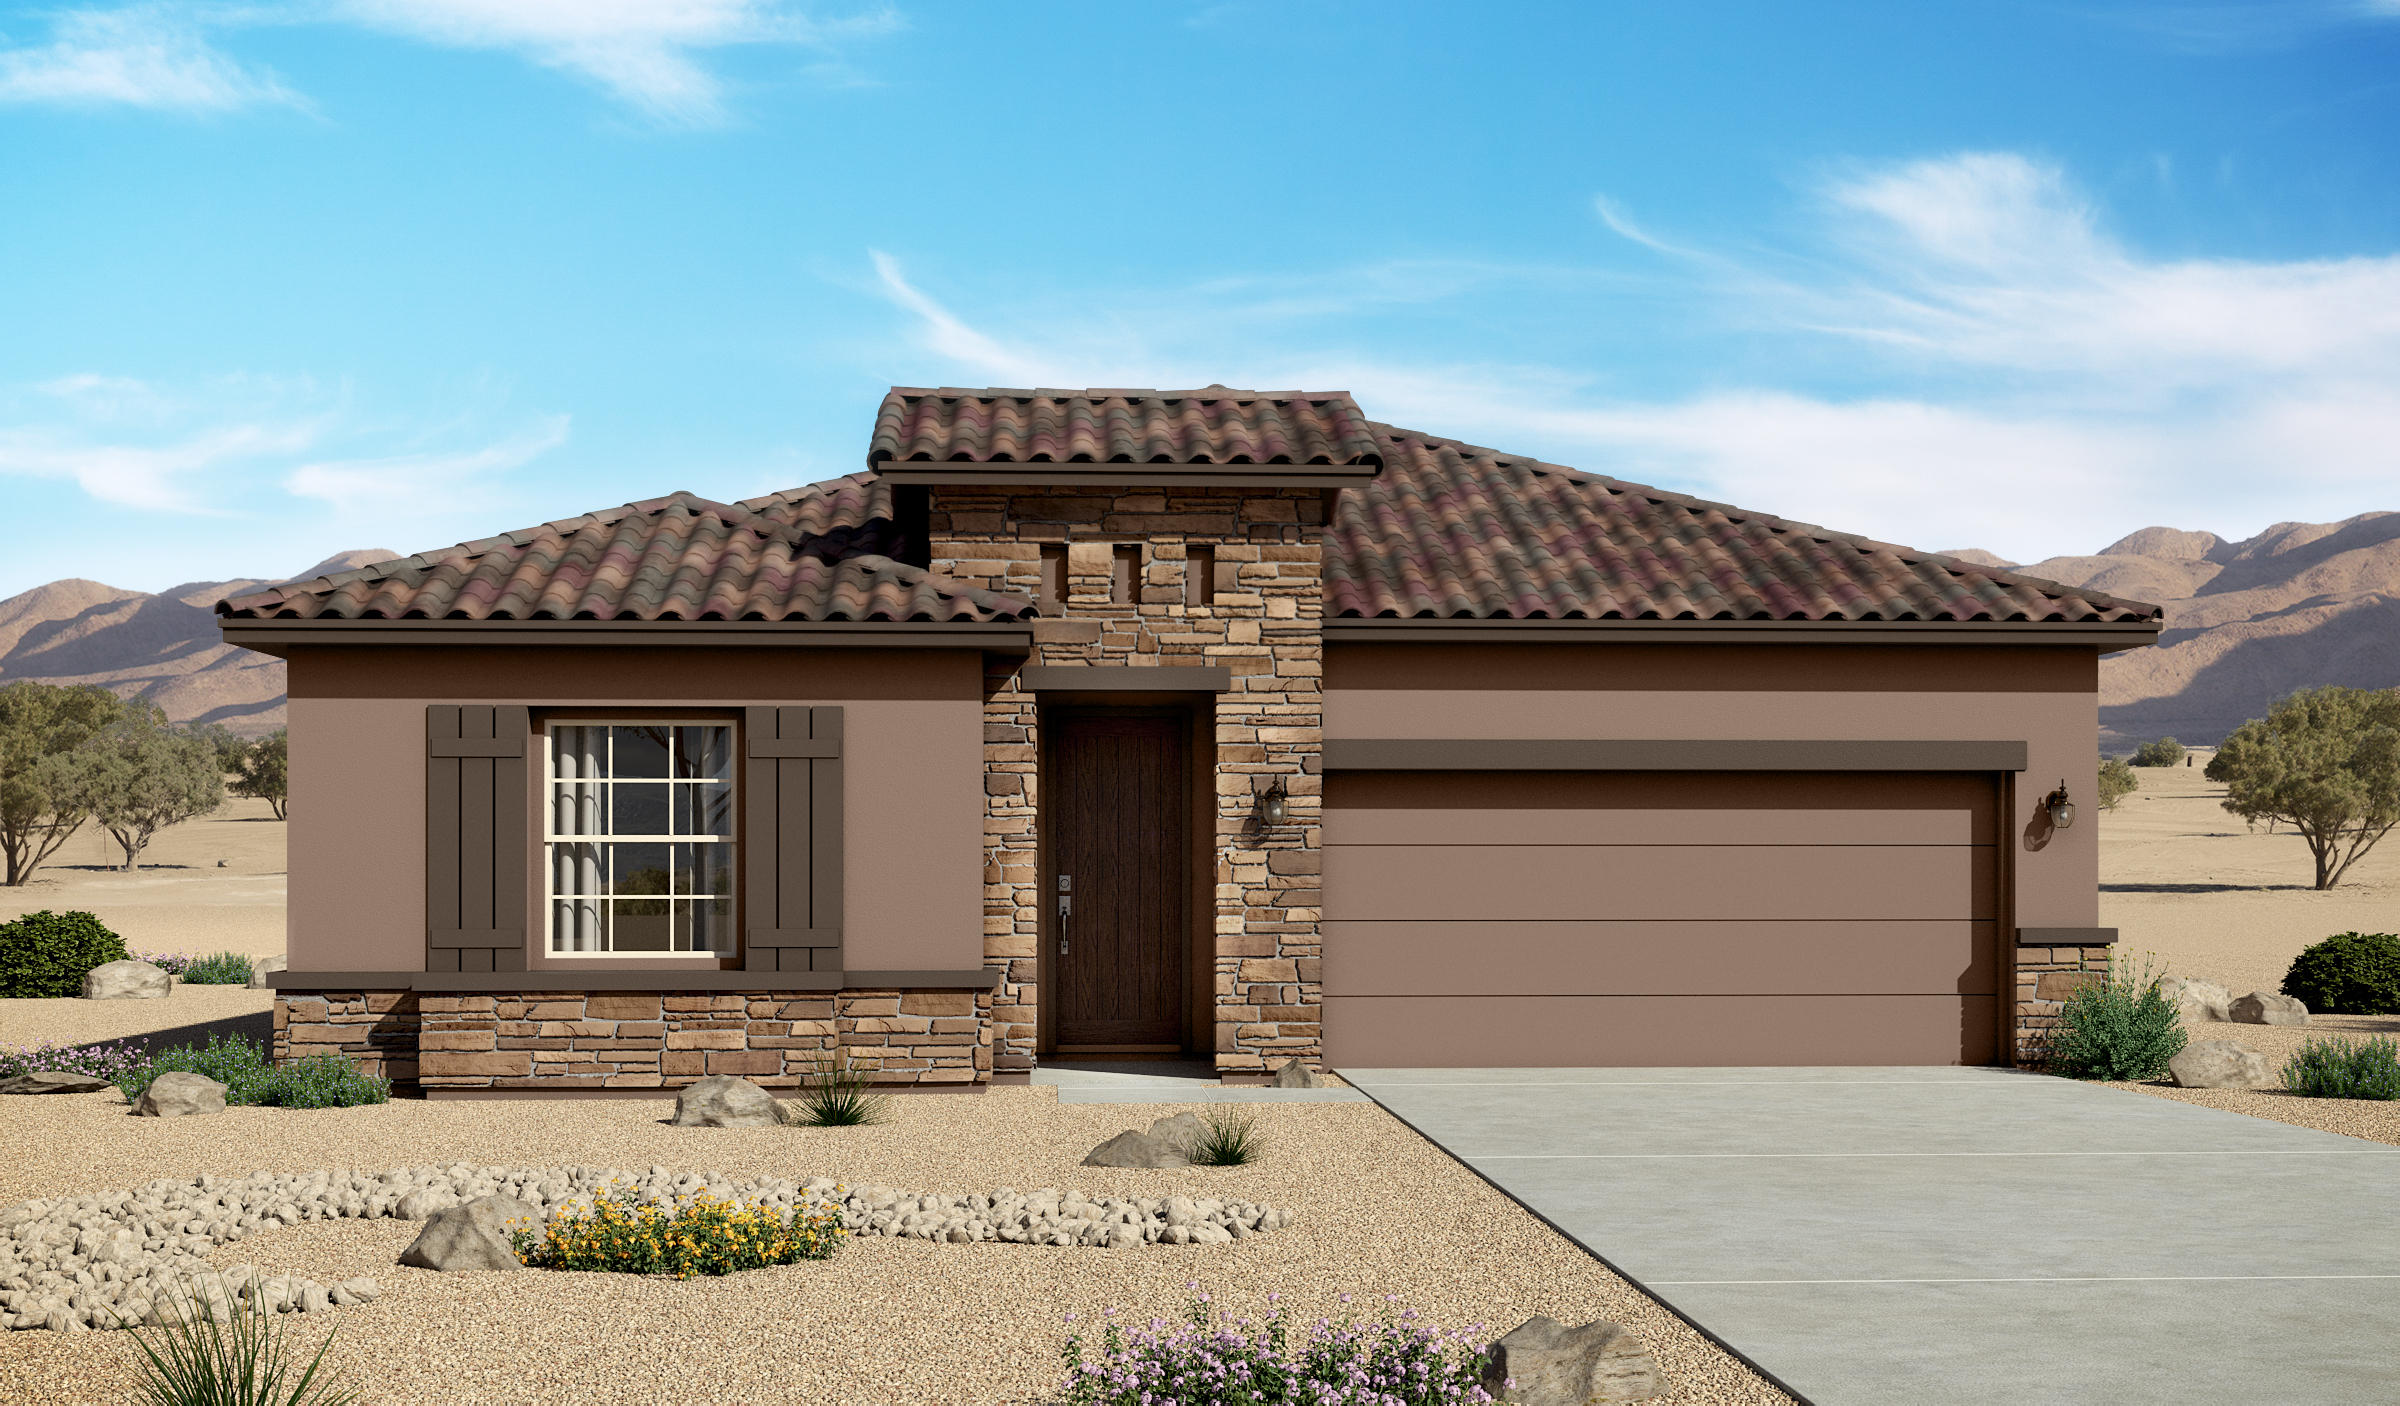 Beautiful 3 bedroom 2 bath home in desirable Lomas Encantadas community.  This home is stacked with a 36'' fireplace; luxurious master bedroom/bath with rain shower head.  This home has a beautiful Gourmet kitchen with stainless steel farm sink.  This home has tiled floors, tiled baths, and bedroom carpet.Gourmet Kitchen.Completion date 12-08-2020